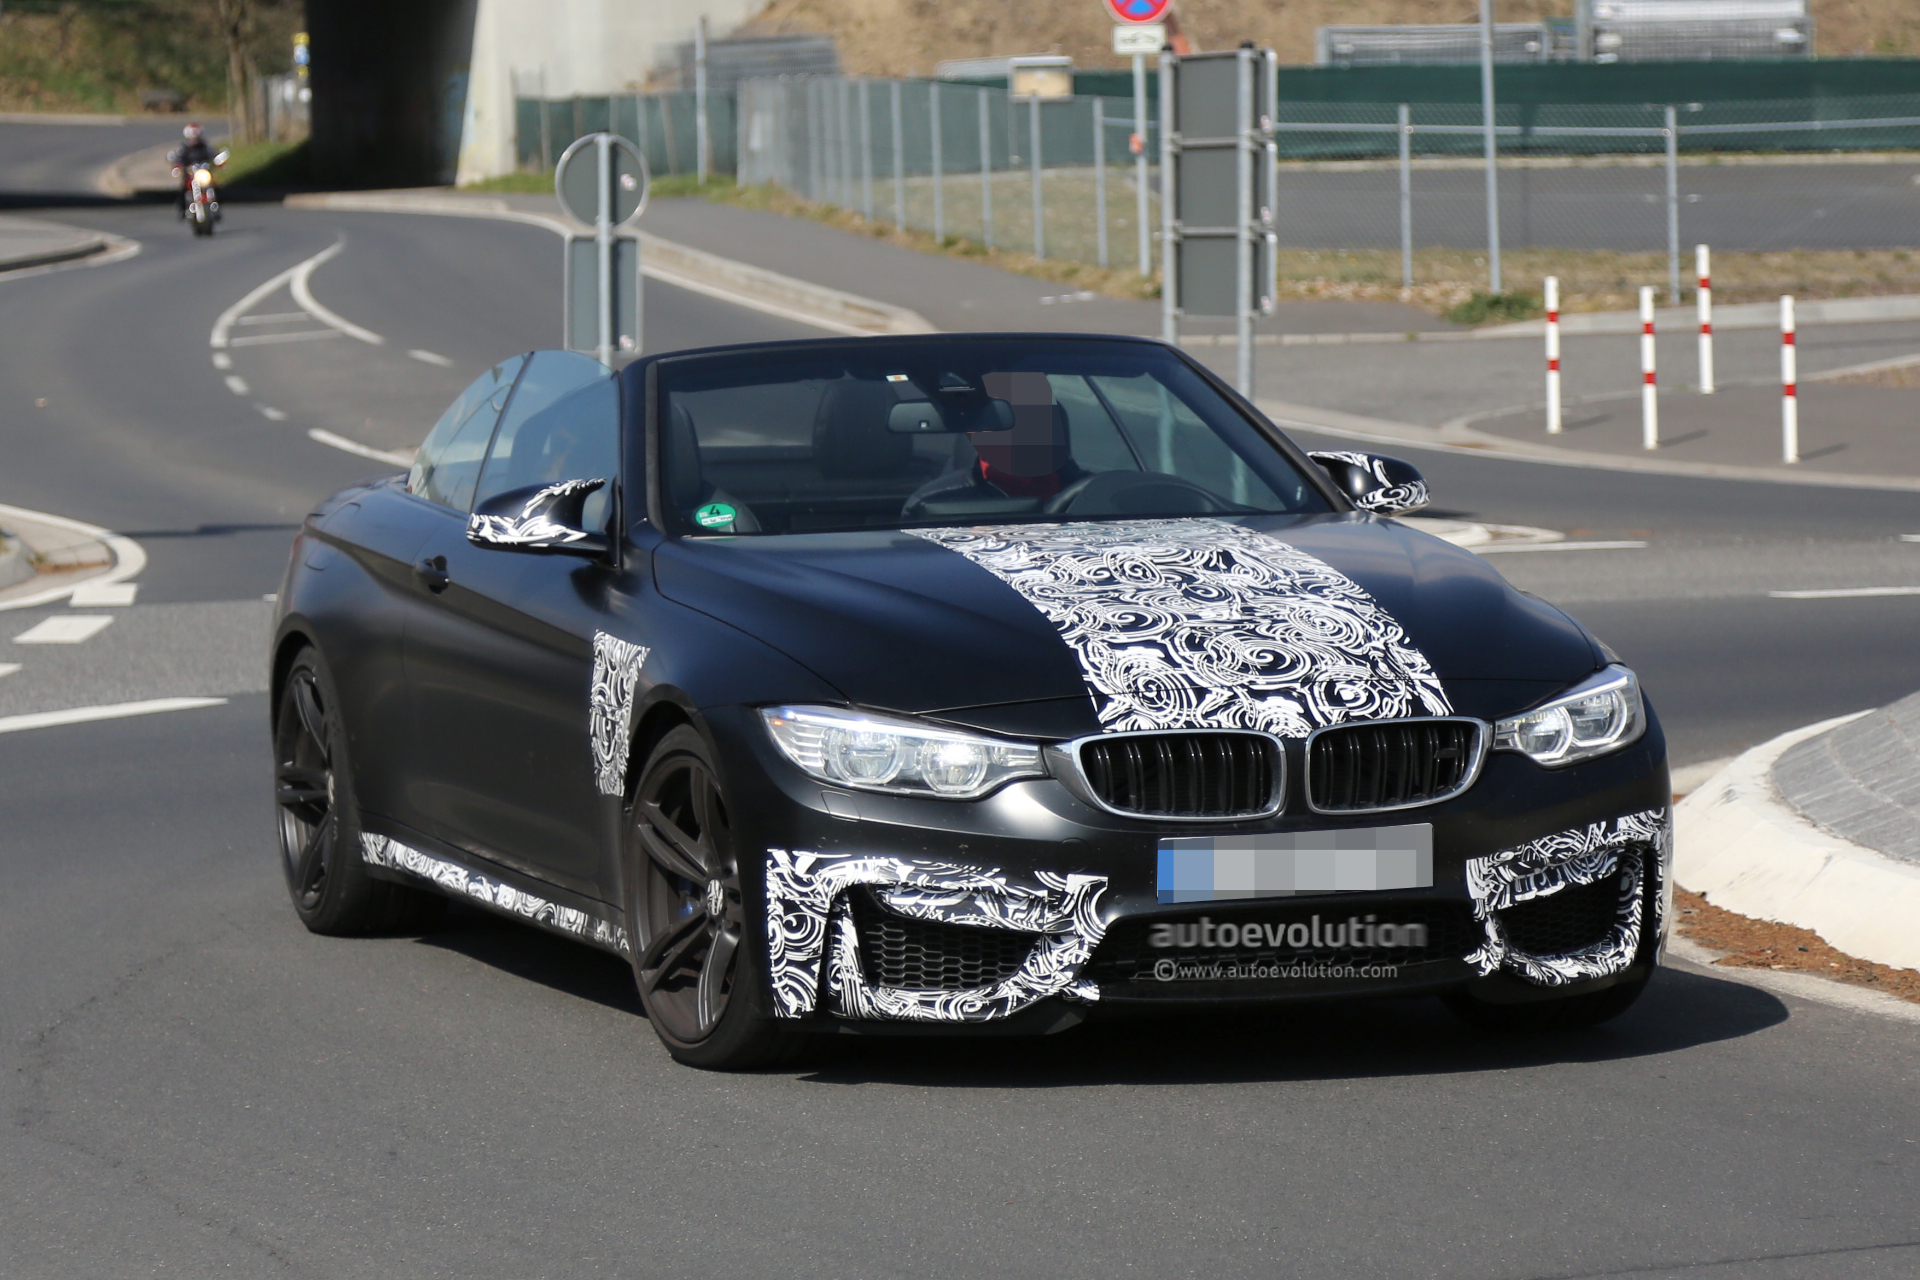 Spyshots: BMW M4 Convertible Caught with the Top Down ...